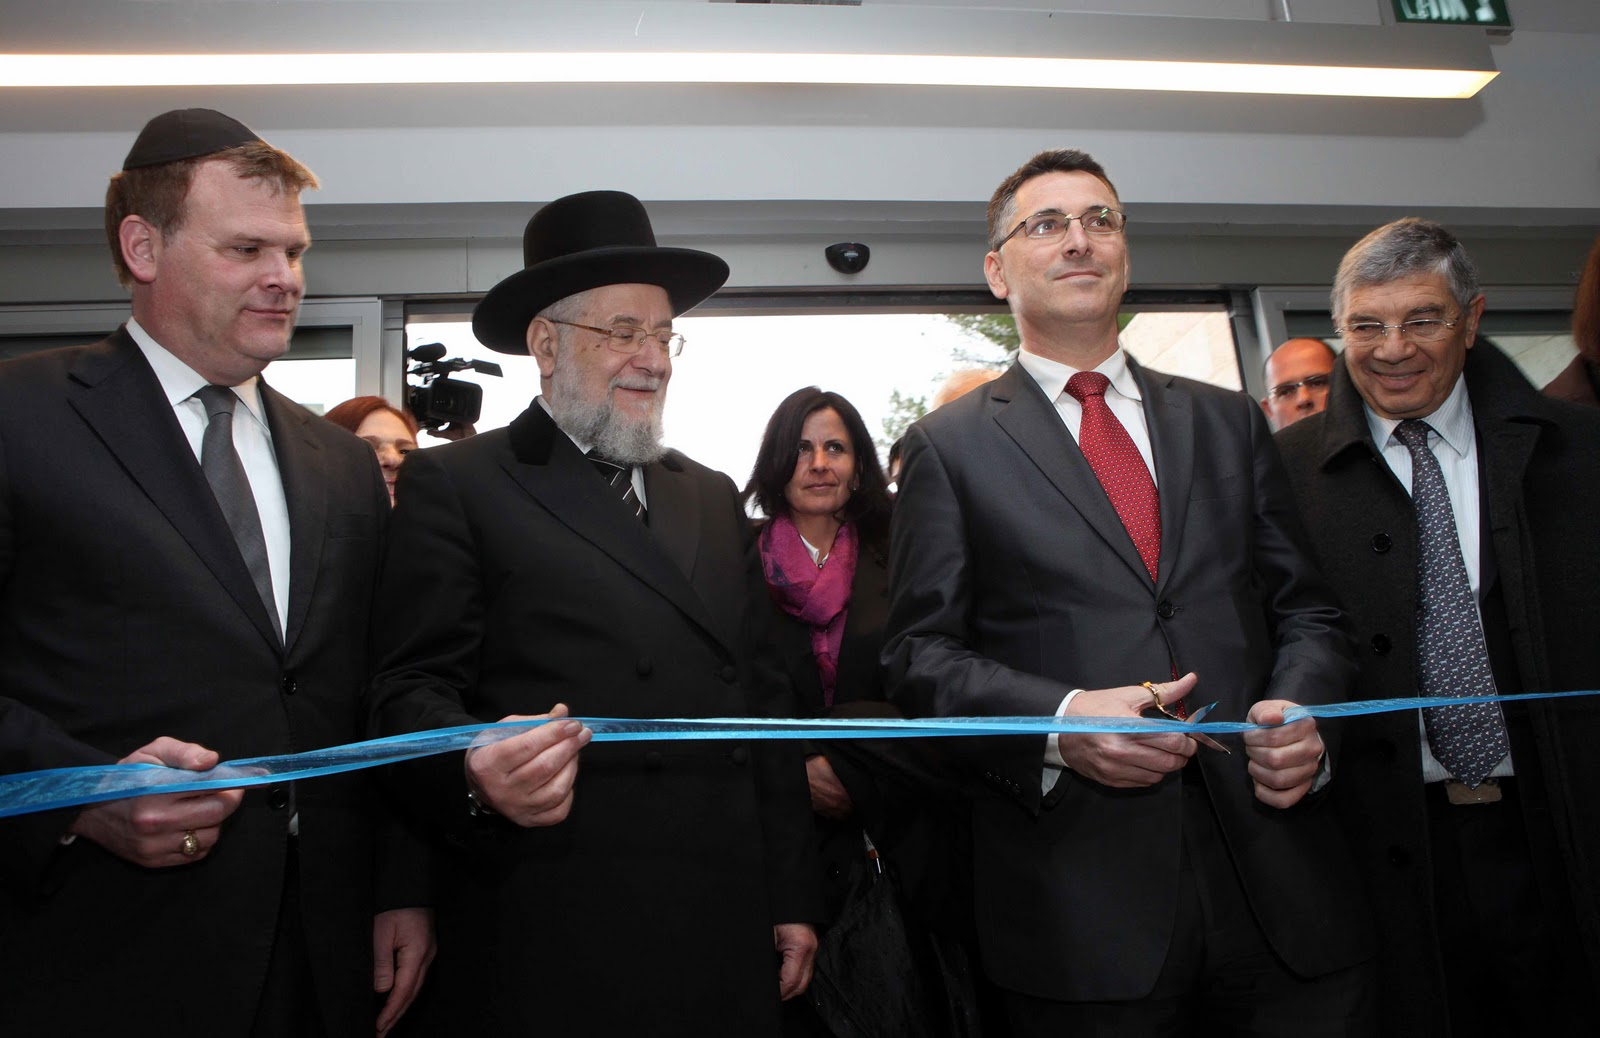 (From right) Chairman of the Yad Vashem Directorate Avner Shalev, Education Minister Gideon Sa'ar, Chairman of the Yad Vashem Council Rabbi Israel Meir Lau and Foreign Minister of Canada John Baird during the ribbon cutting